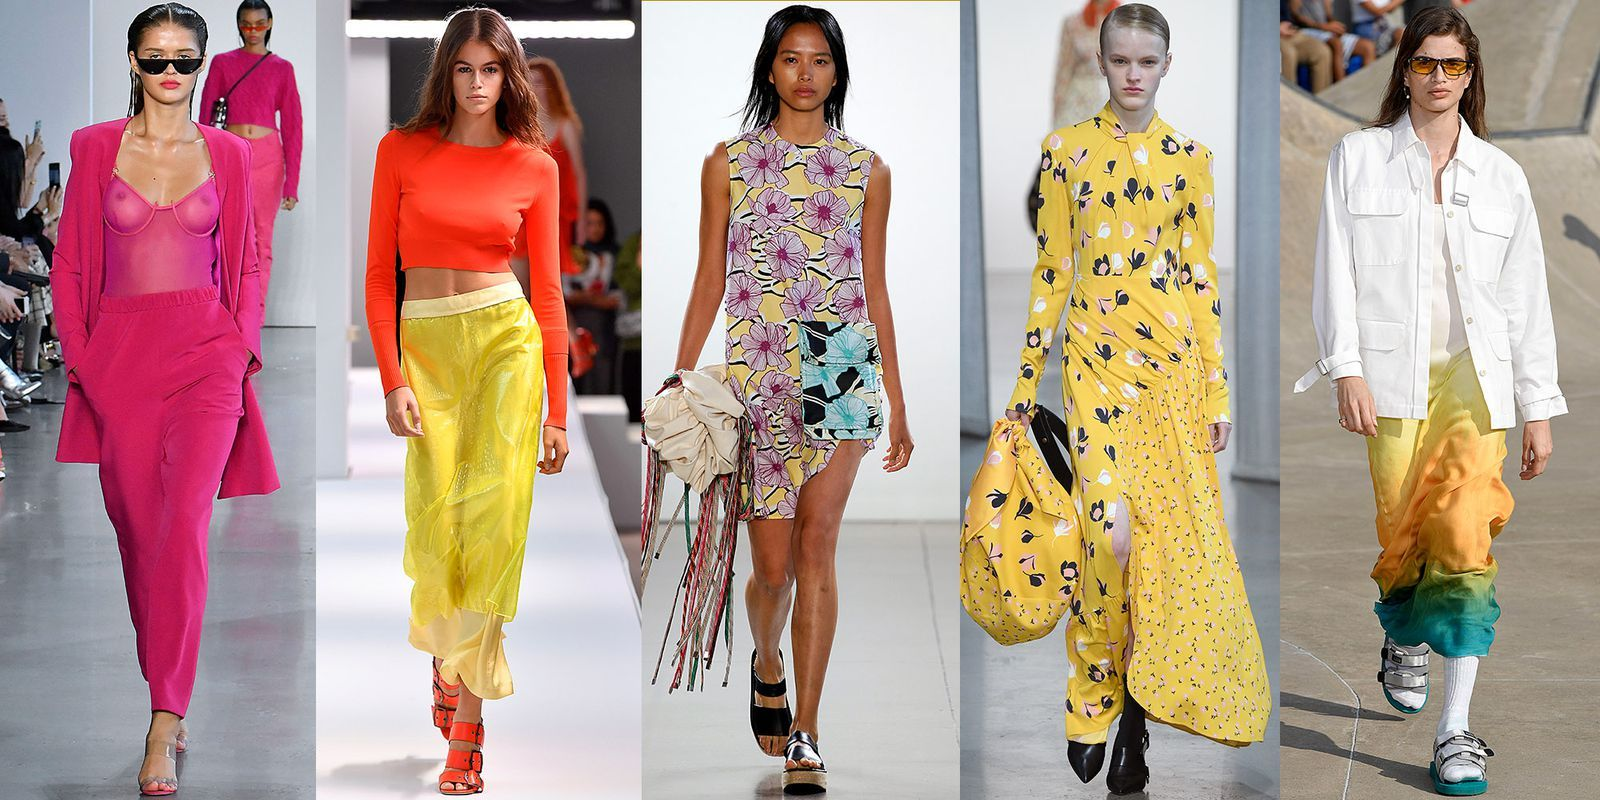 Pin on Fashion Trend Forecast